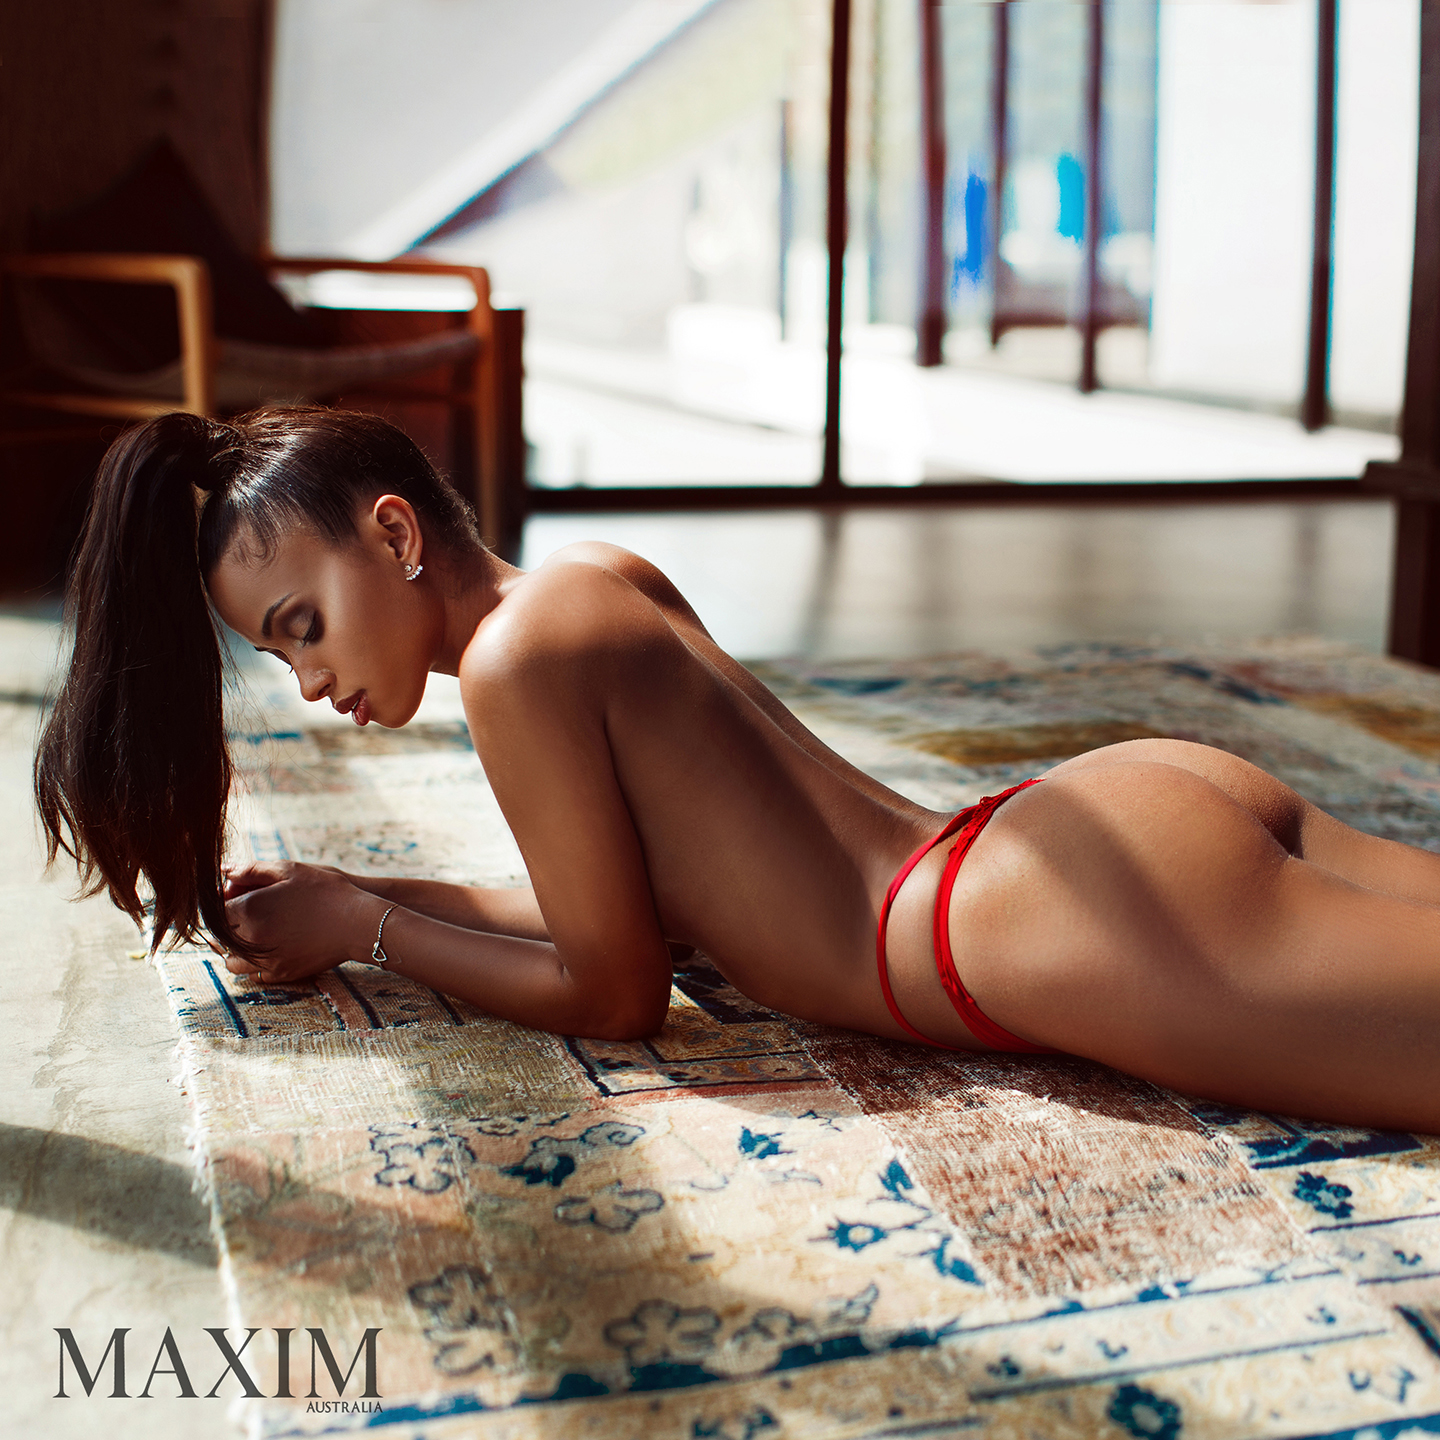 MAXIM-Australia-Ashley-Arre-19